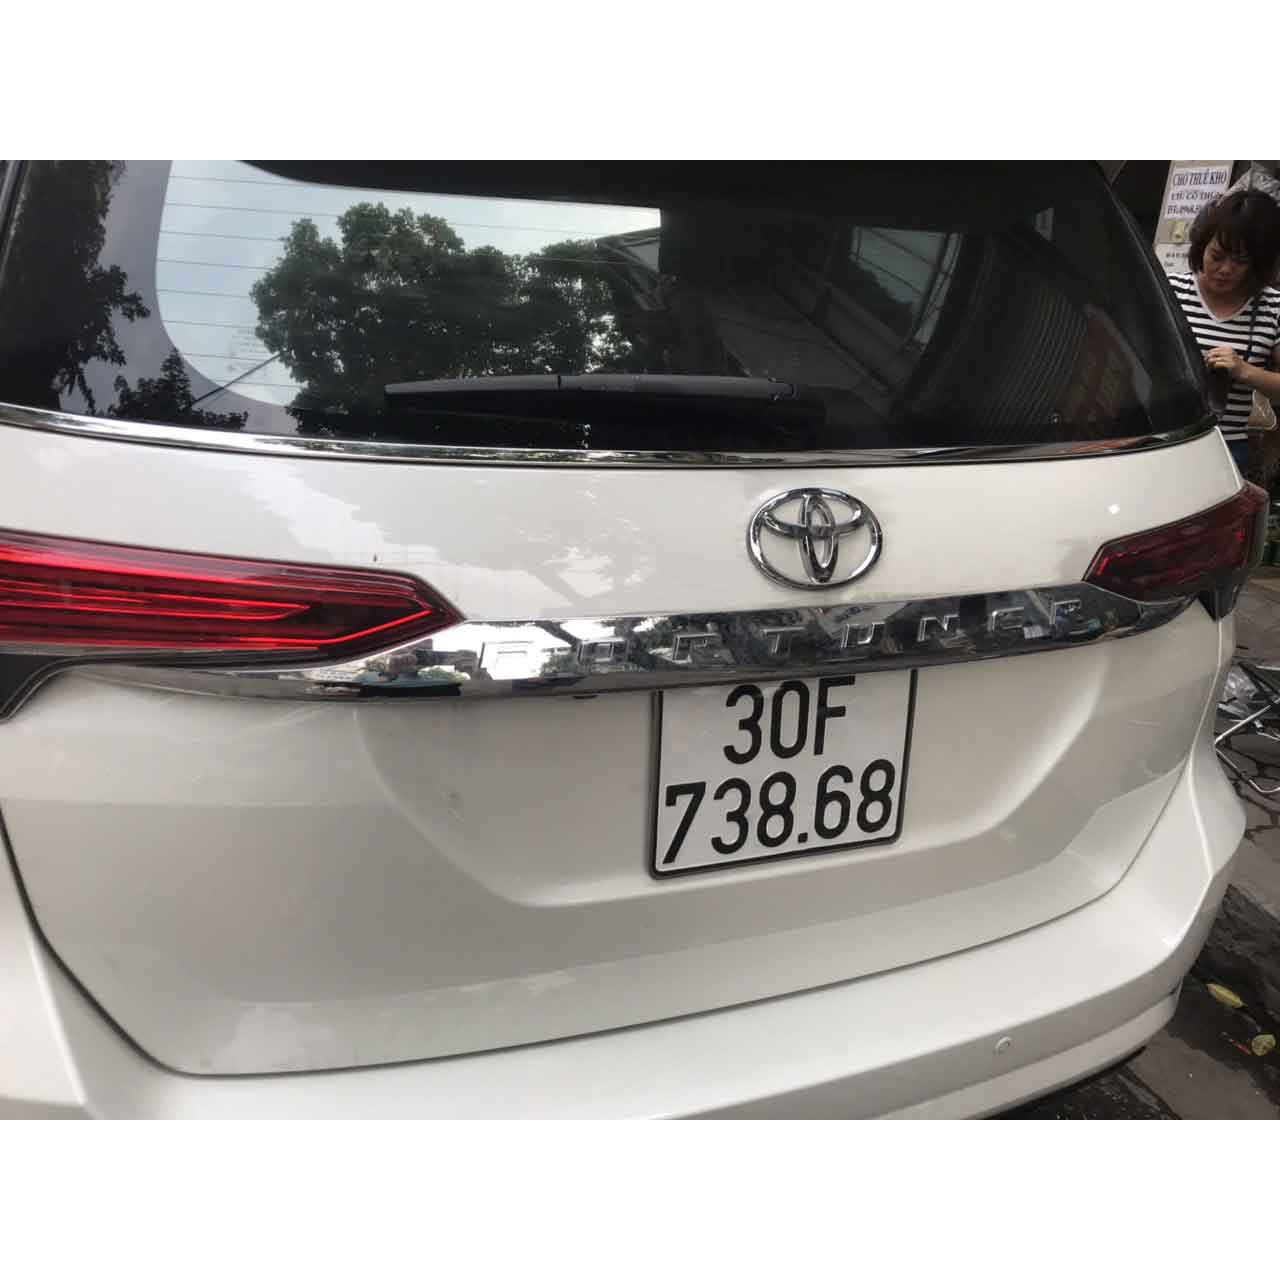 Ốp Tay Mở Cốp Mạ Crom Xe Fortuner 2017 2018 2019 2020